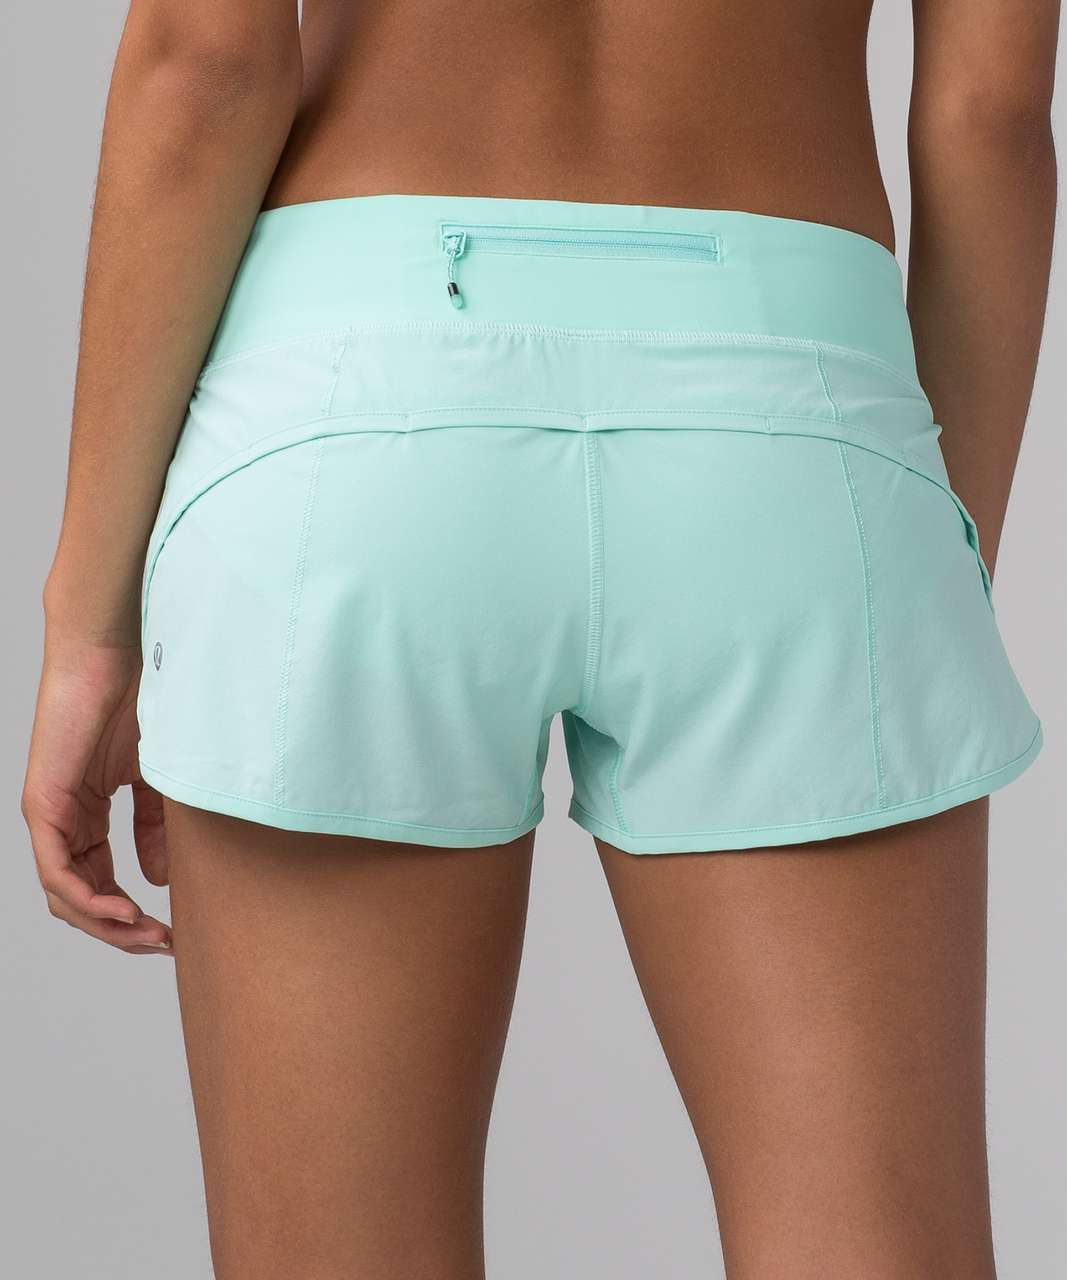 "Lululemon Speed Short (4-way Stretch 2.5"") - Toothpaste"